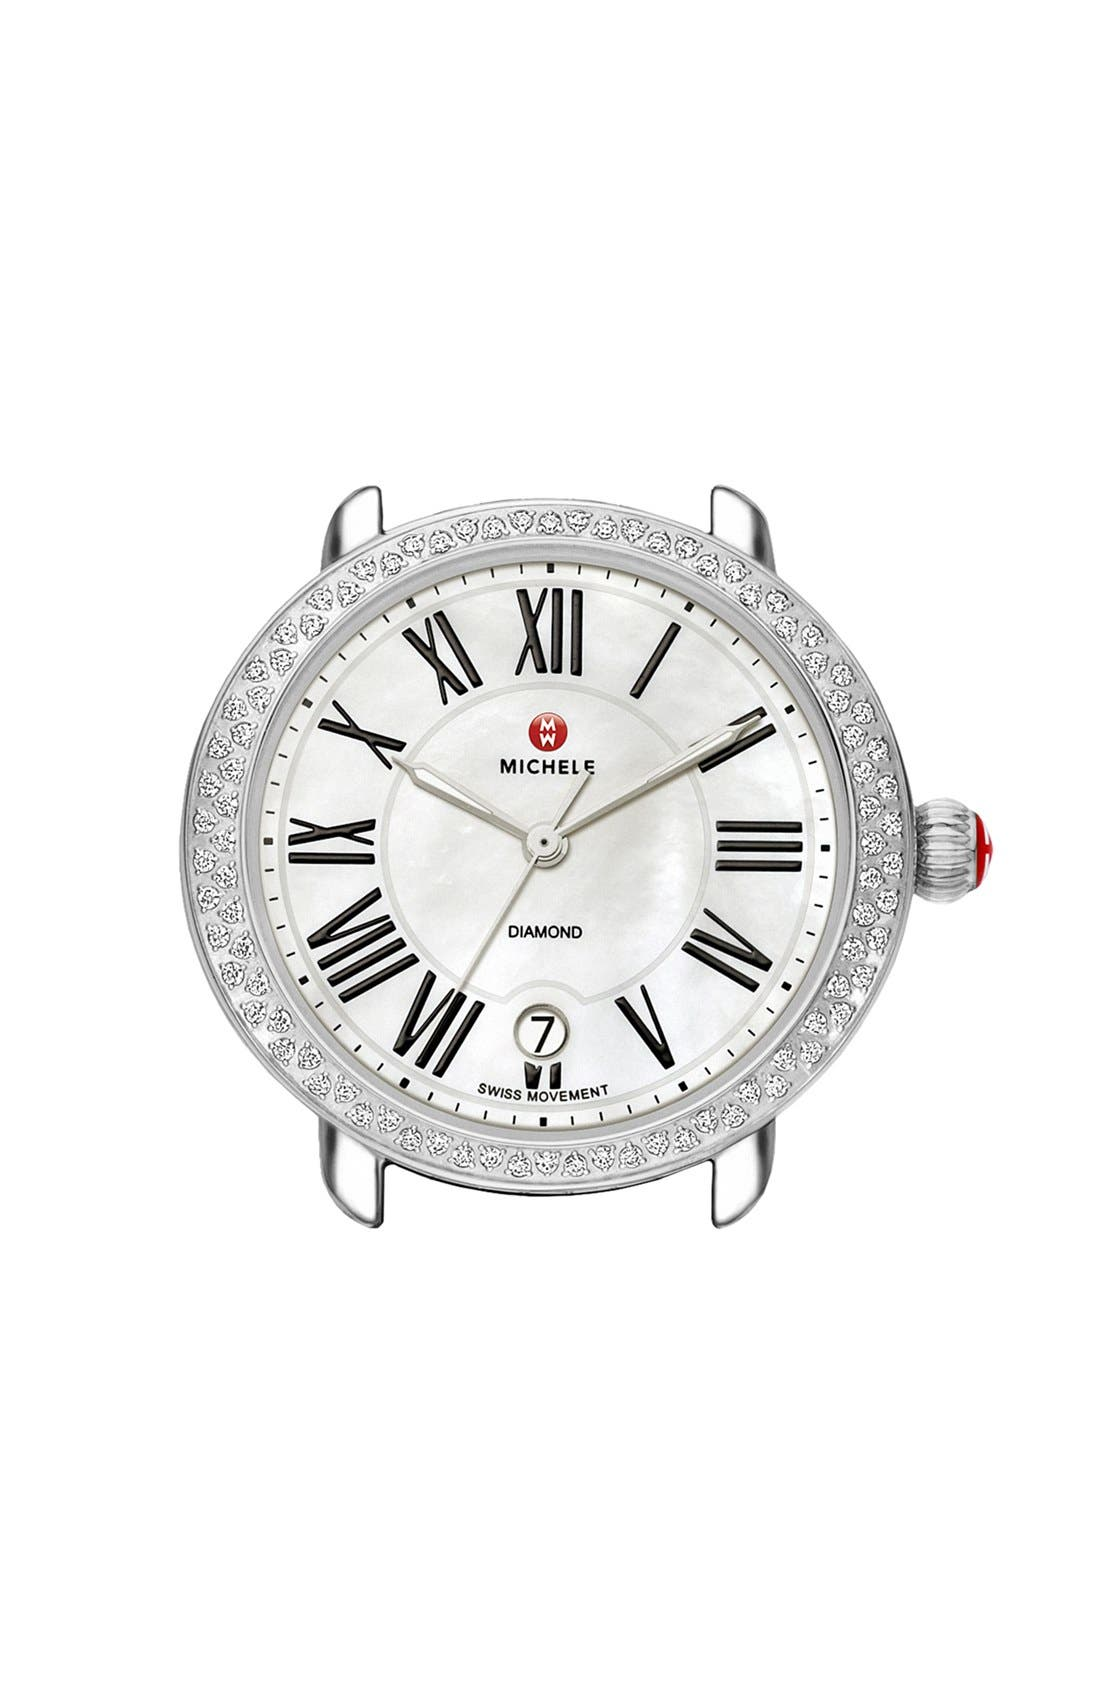 Alternate Image 1 Selected - MICHELE Serein 16 Diamond Gold Plated Watch Case, 34mm x 36mm